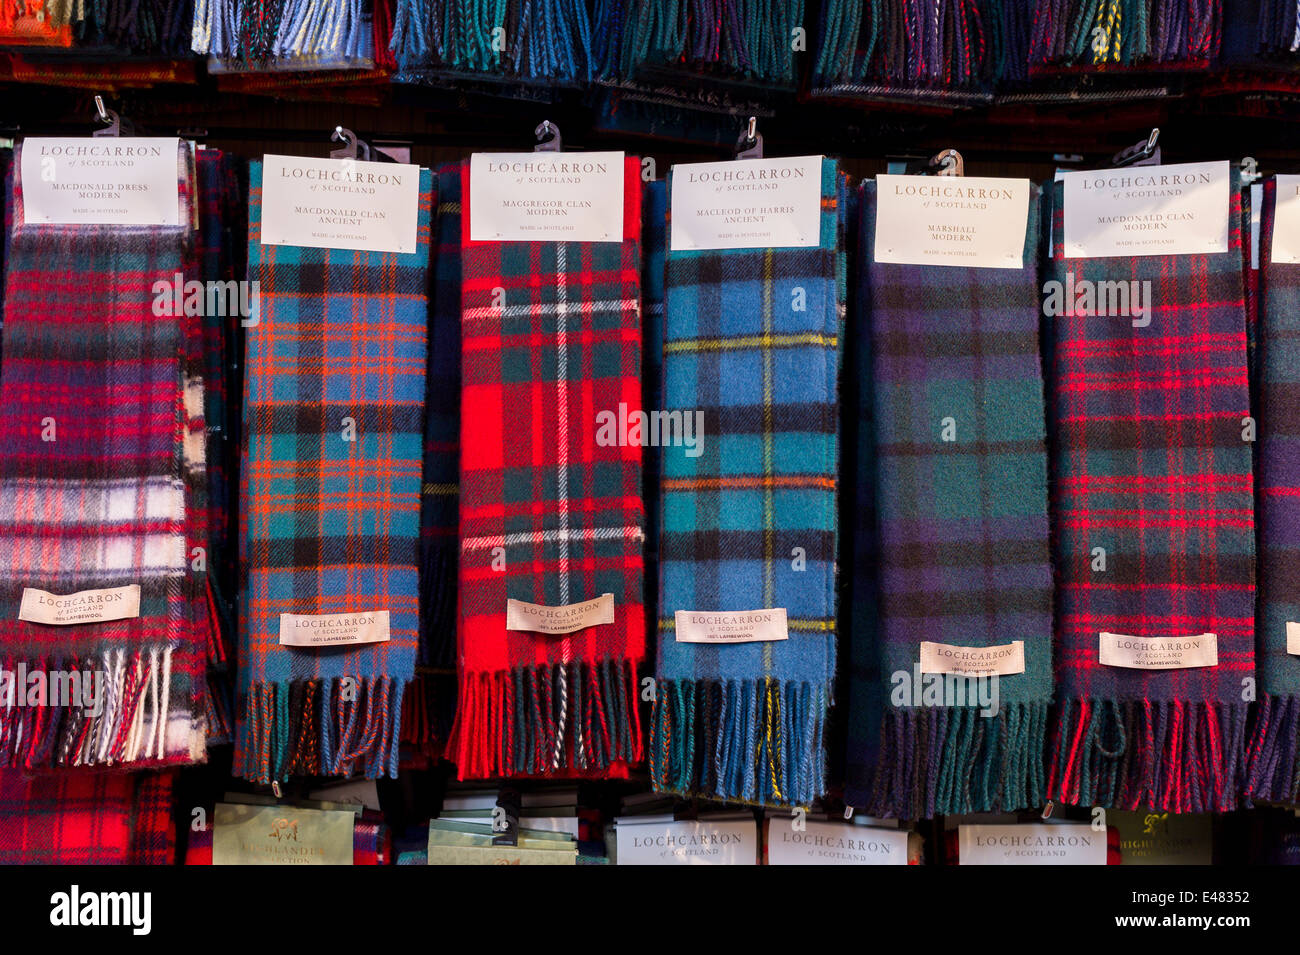 Traditional highland clan tartan scarves on display for sale at Lochcarron Weavers in Lochcarron in the Highlands - Stock Image